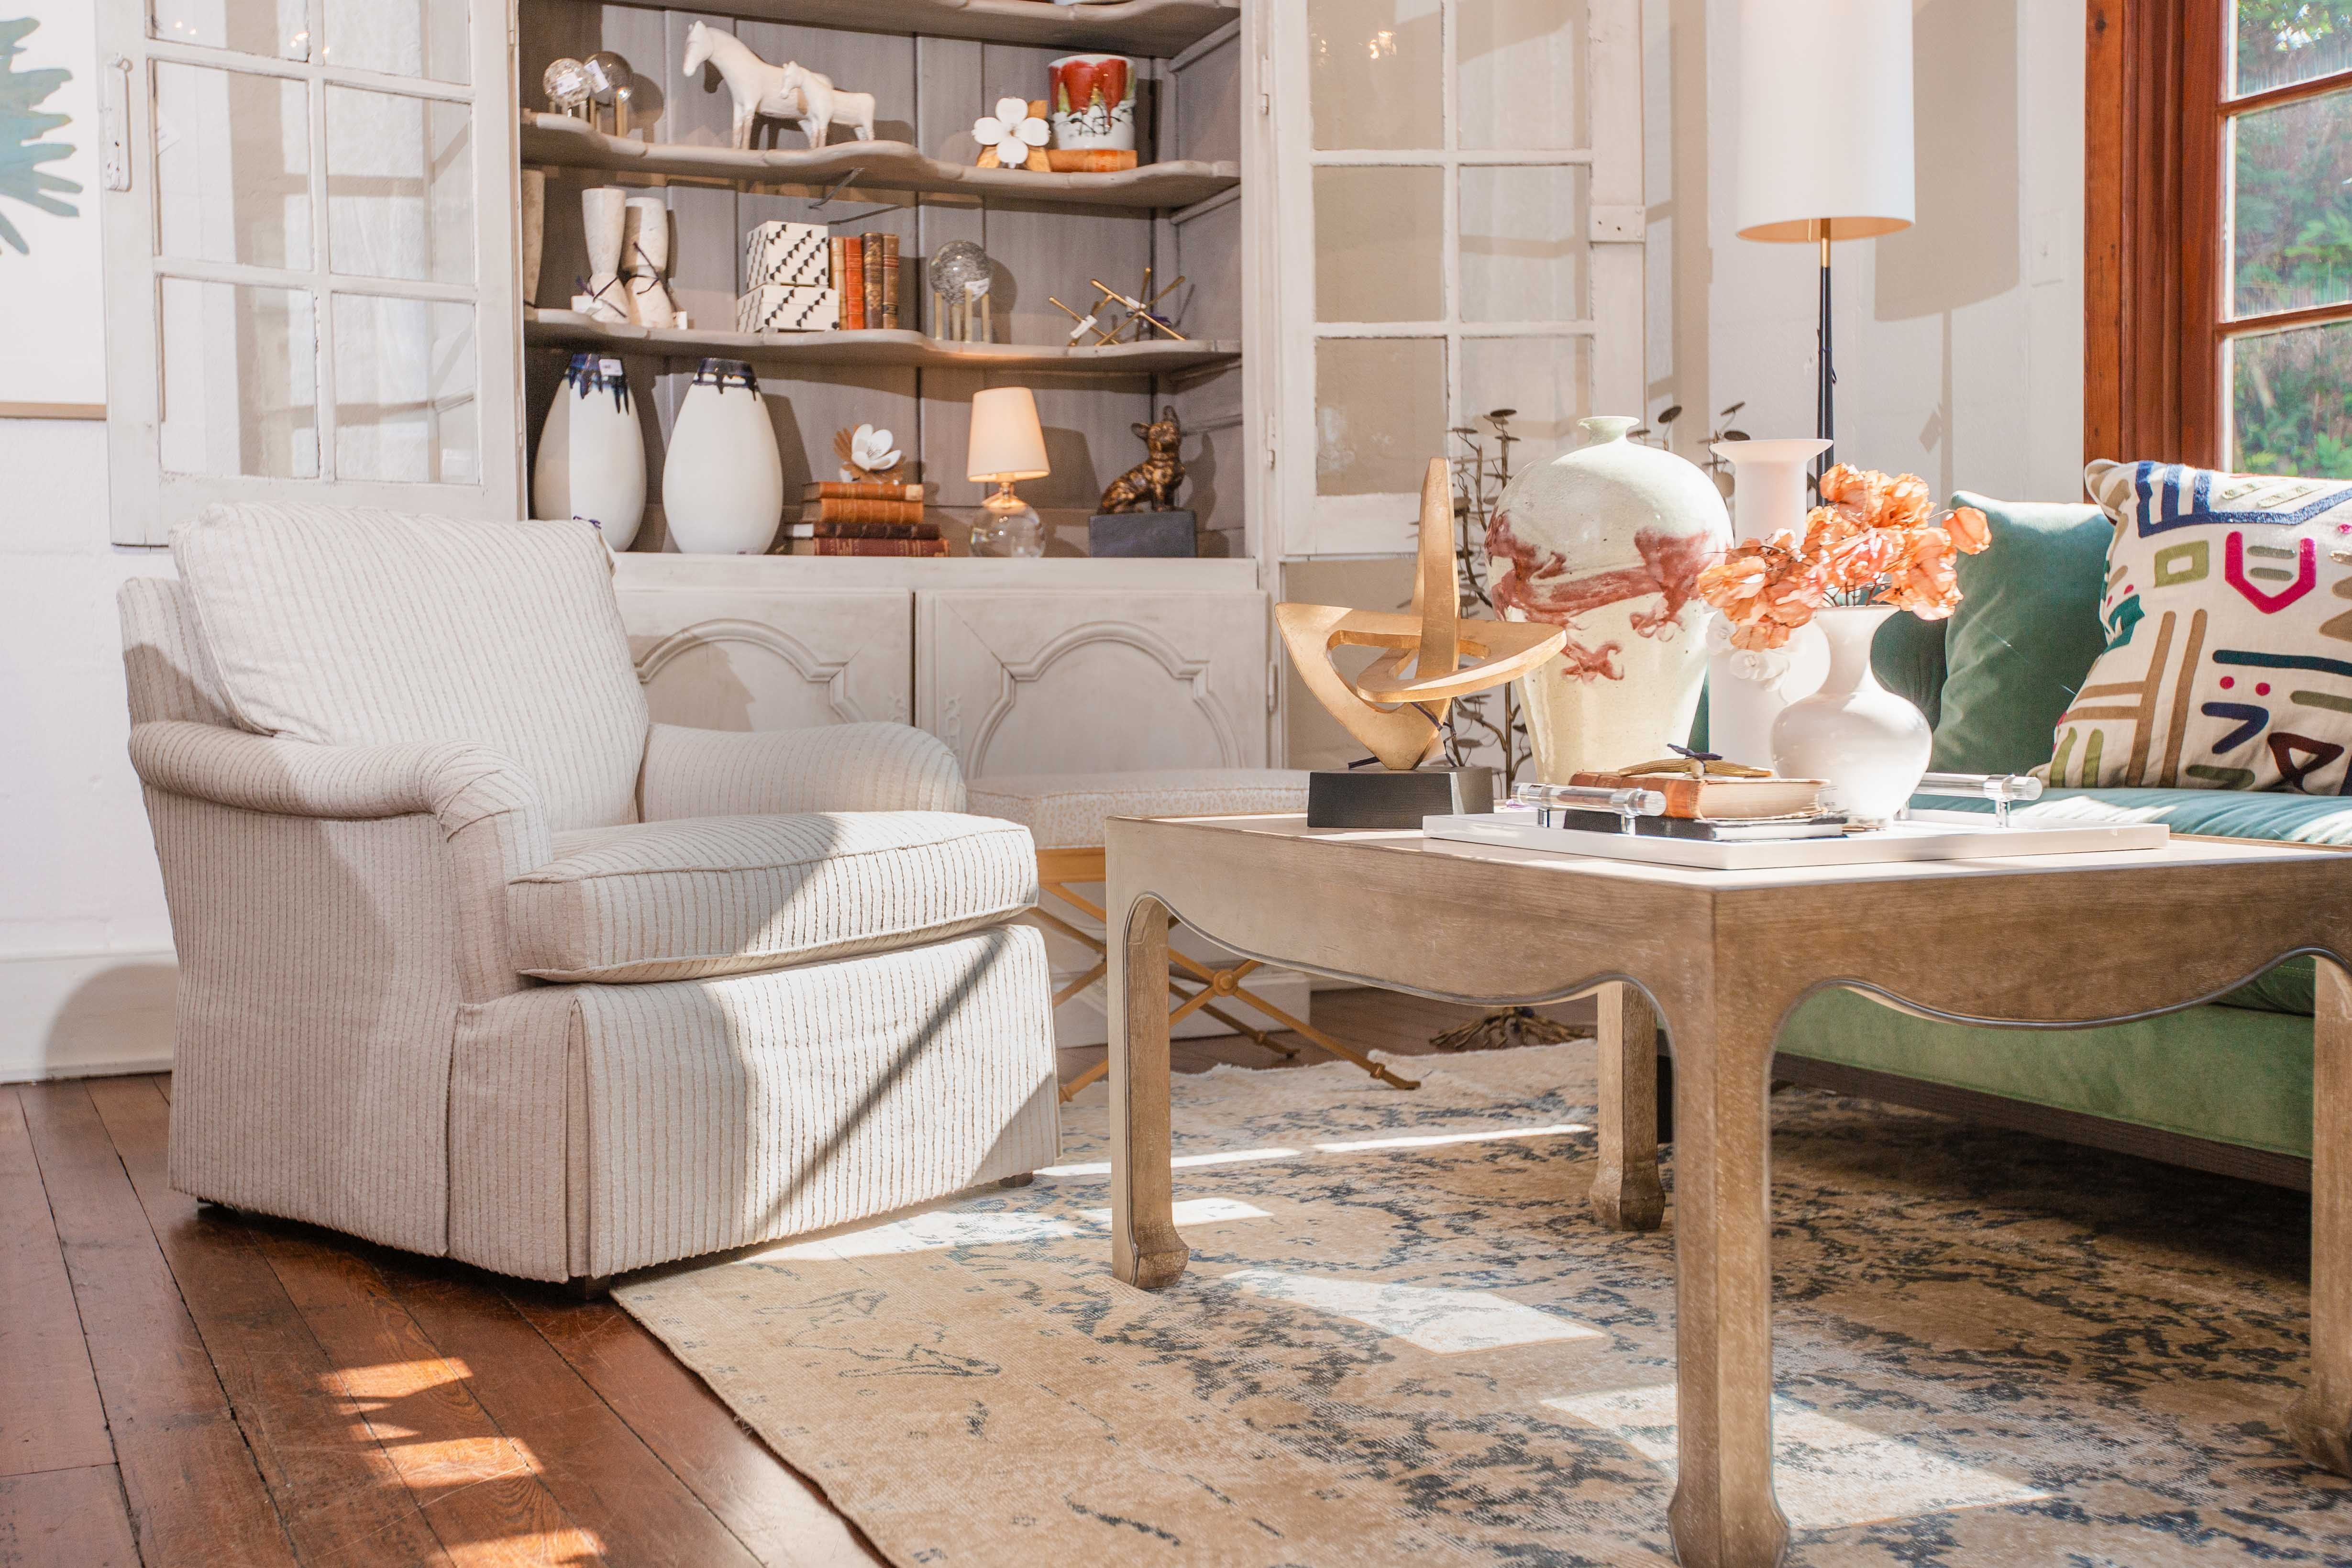 Raise Your Hand If This Chair Makes You Want To Curl Up With A Cup Of Coffee Or Tea Interiordesign Residentialinteriordesign Residentialdesign D En 2020